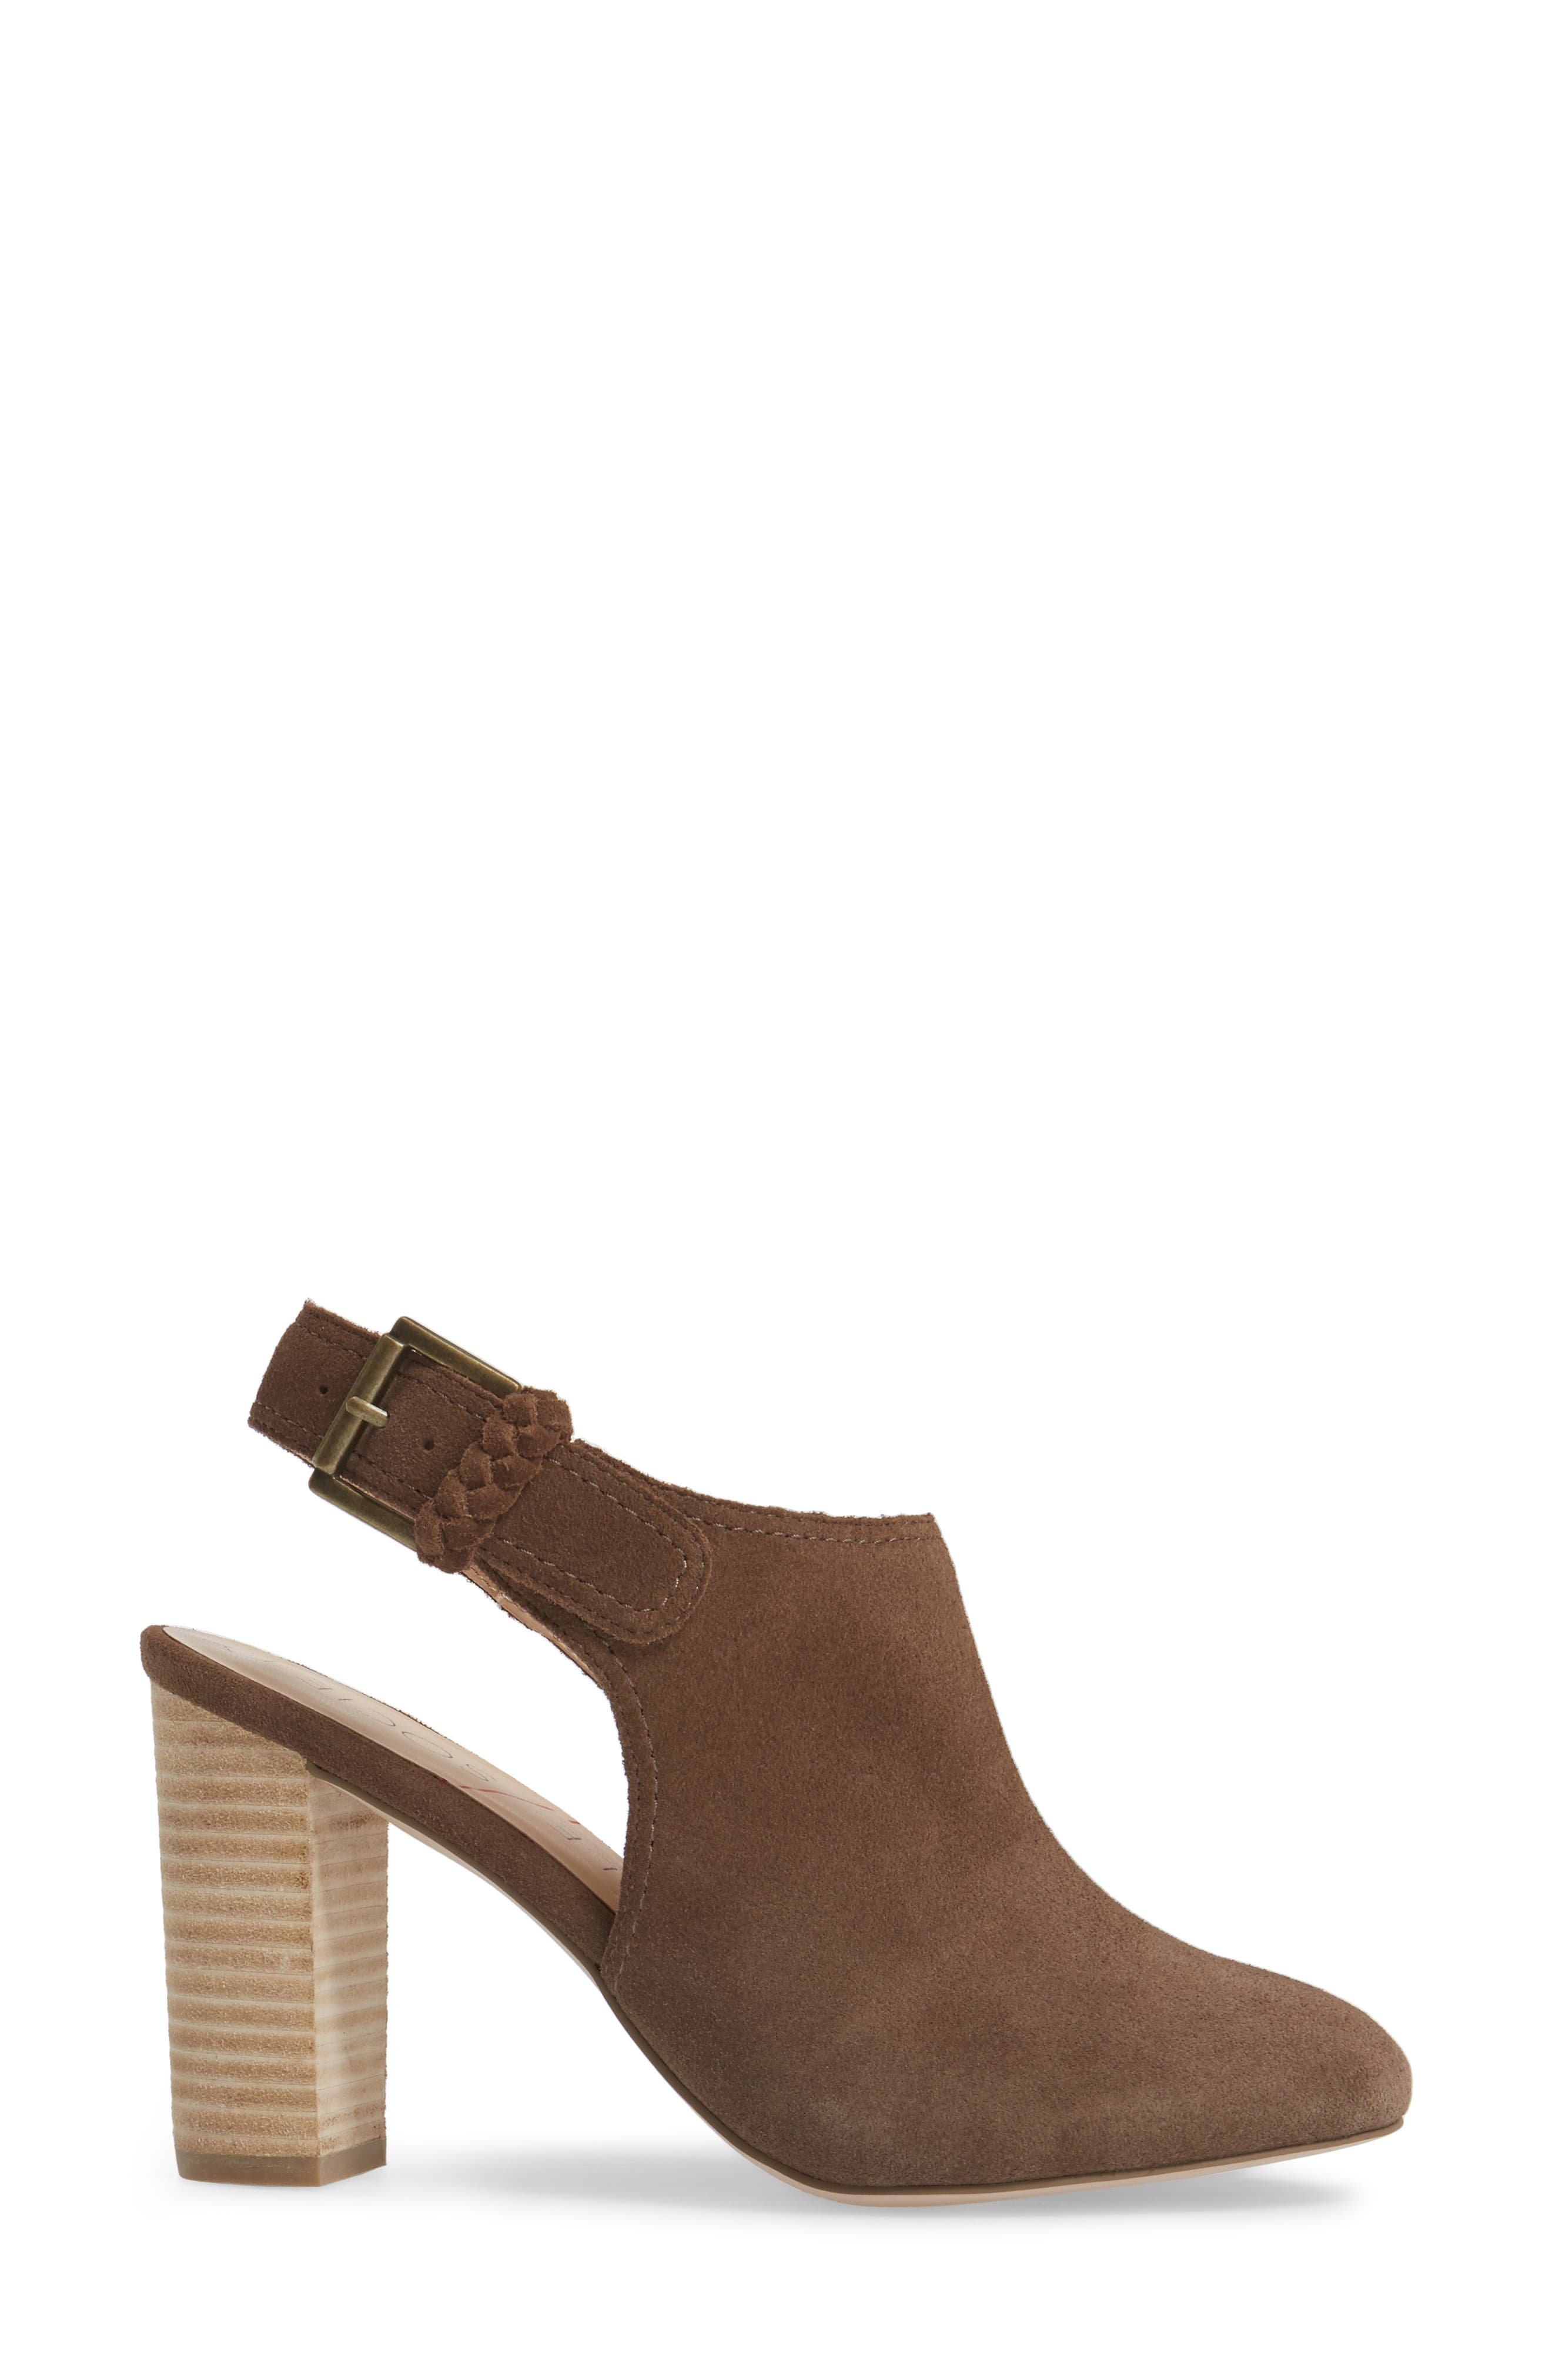 Apollo Slingback Bootie,                             Alternate thumbnail 3, color,                             Dark Taupe Suede Suede